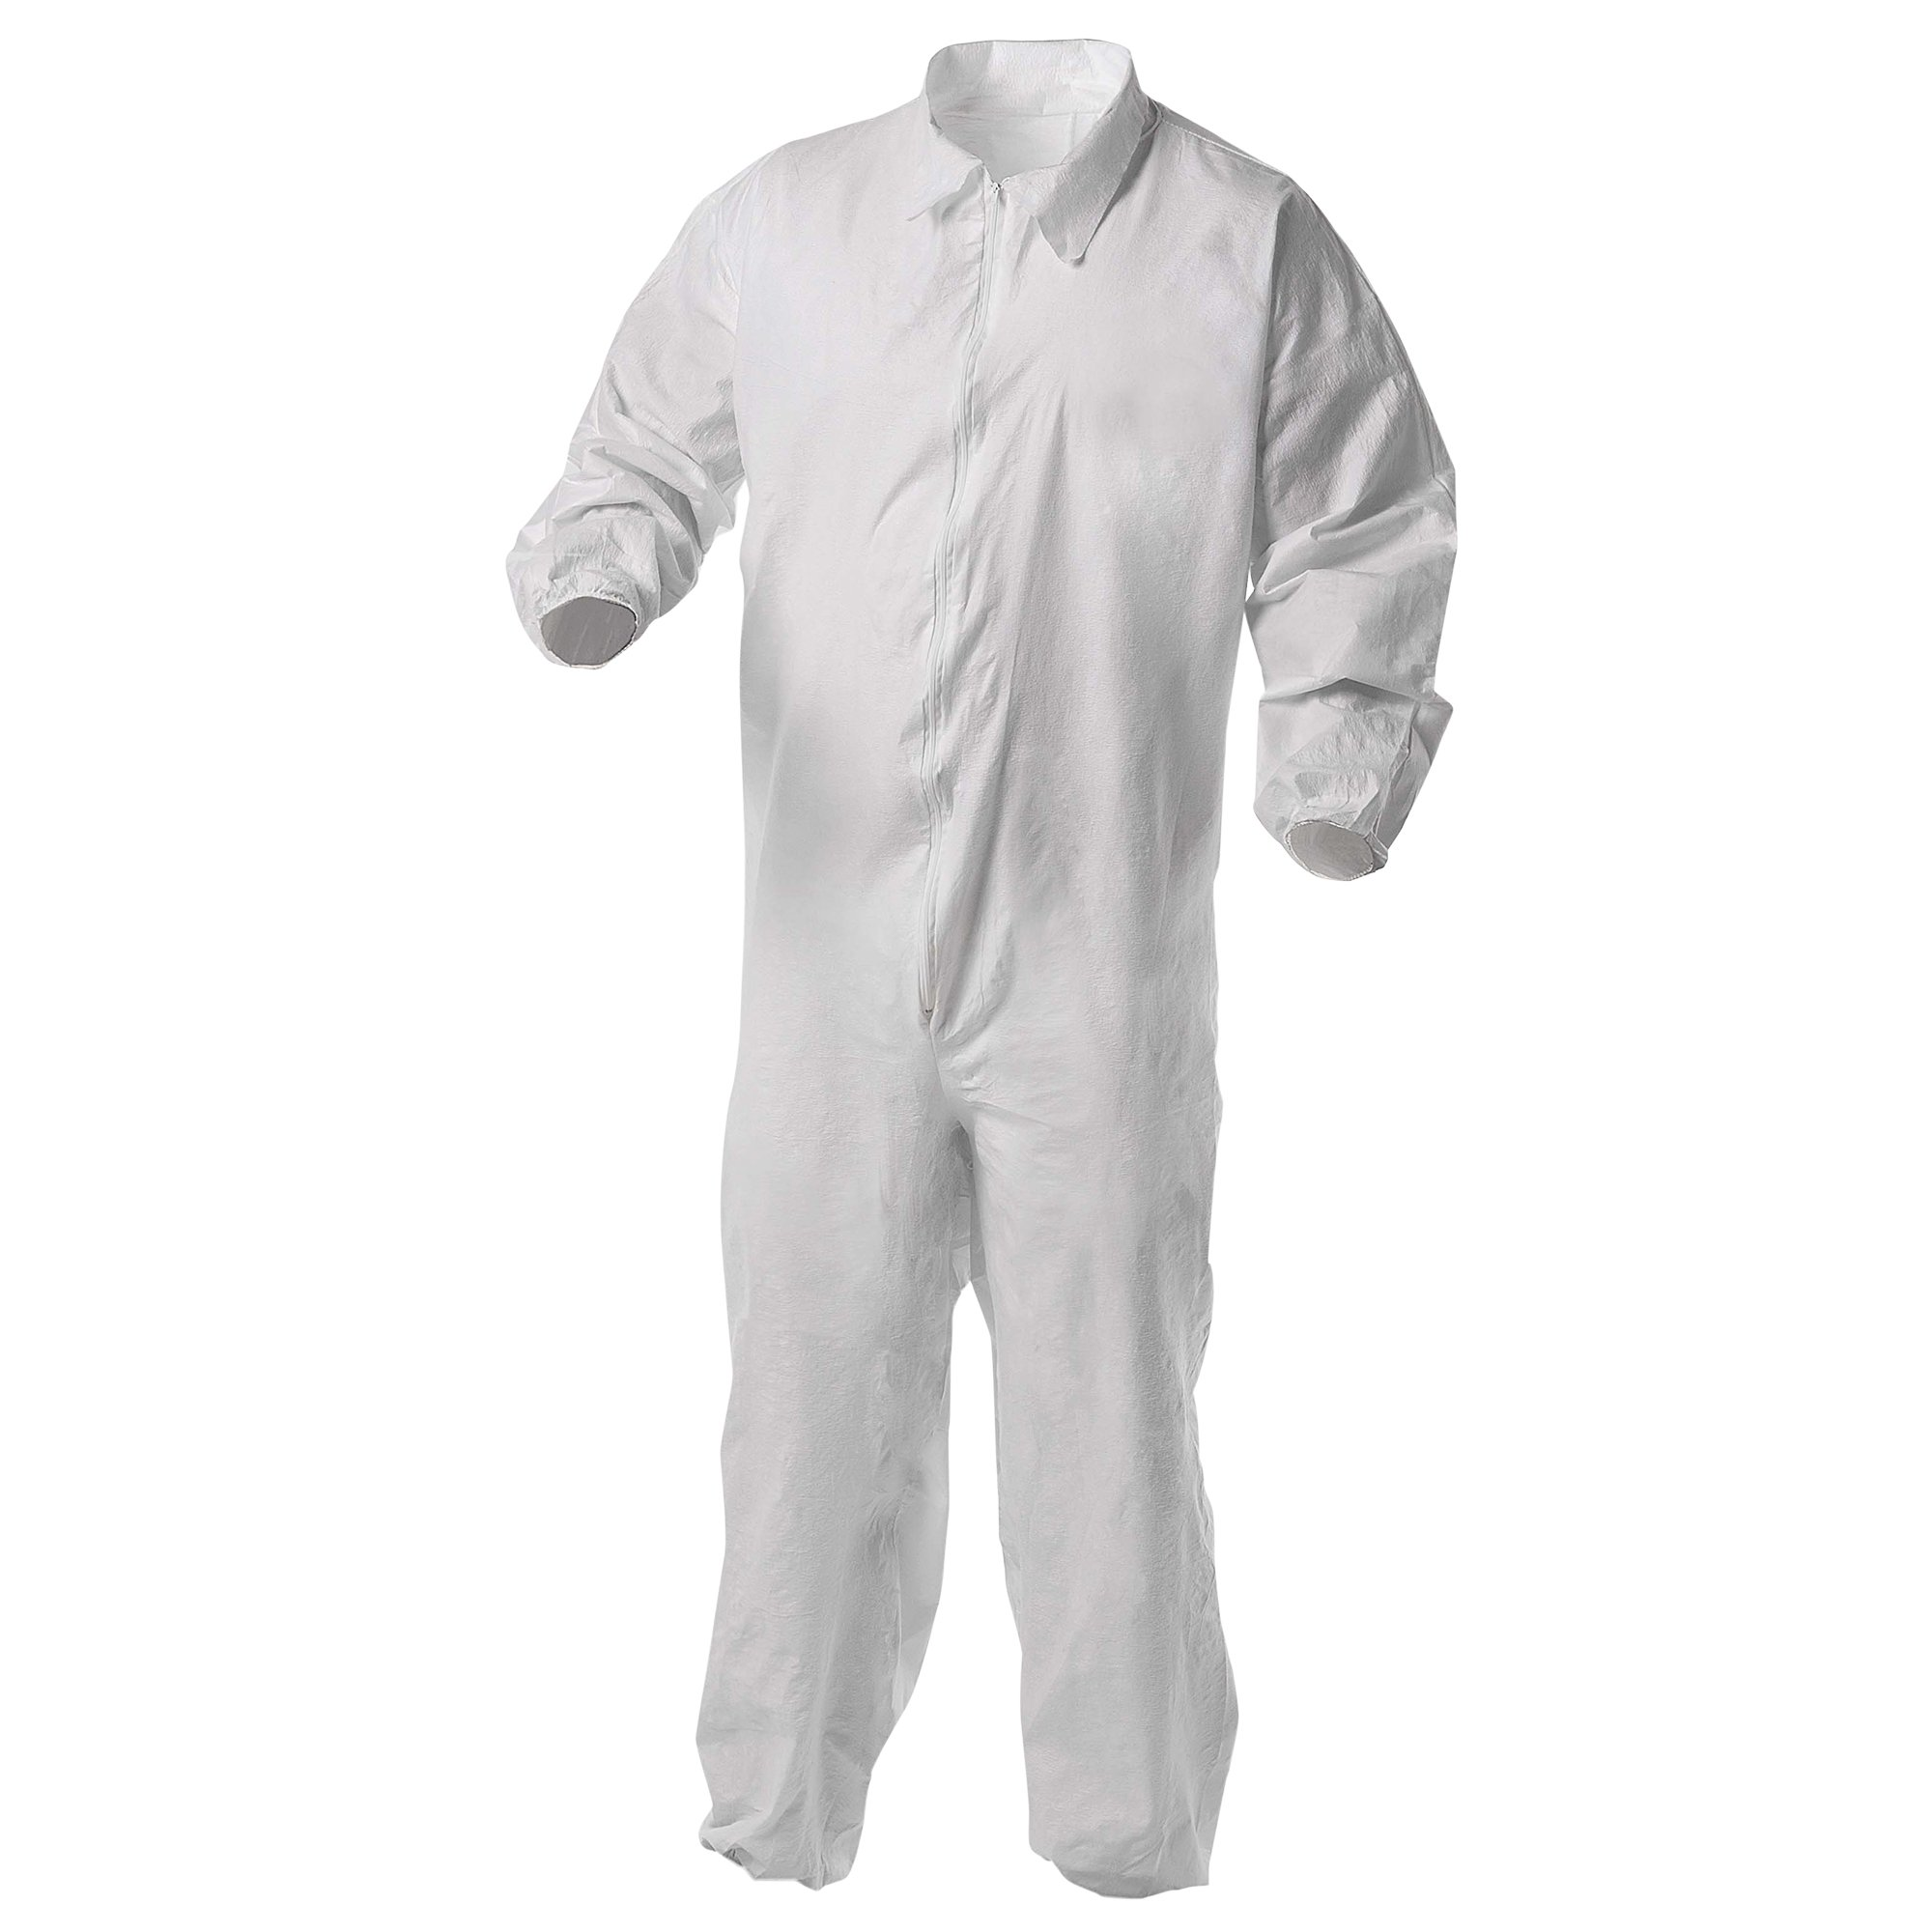 Kleenguard A35 Disposable Coveralls (38929), Liquid and Particle Protection, Zip Front, Elastic Wrists & Ankles (EWA), White, XL, 25 Garments / Case